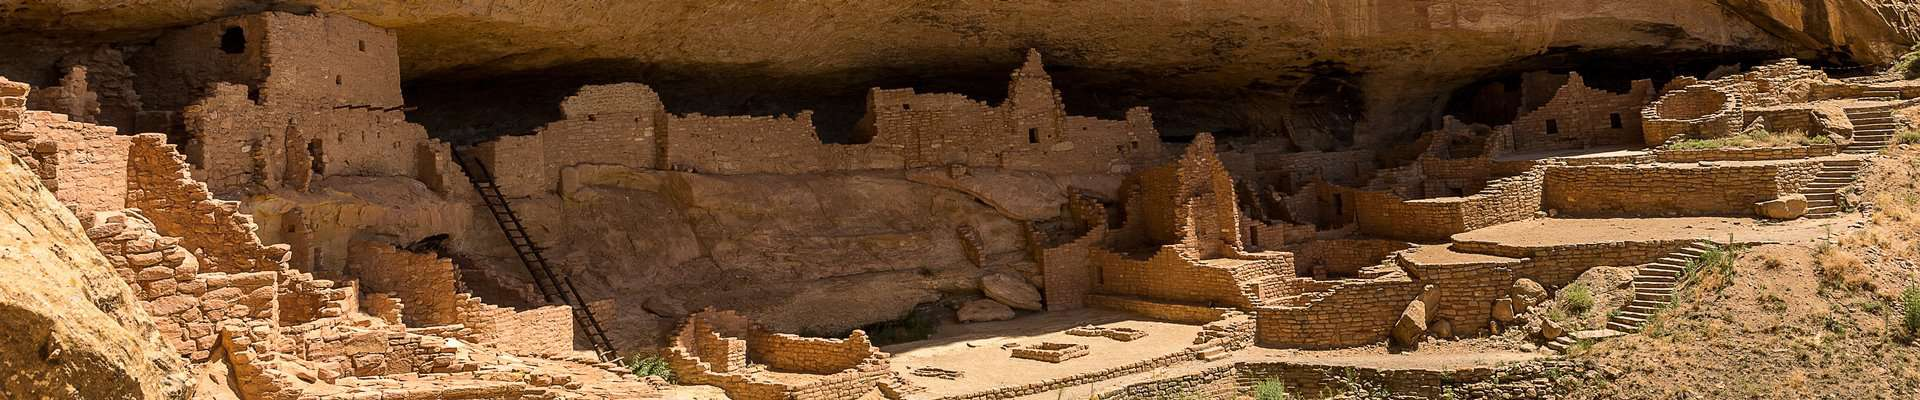 The so-called Long House at Mesa Verde National Park, USA.